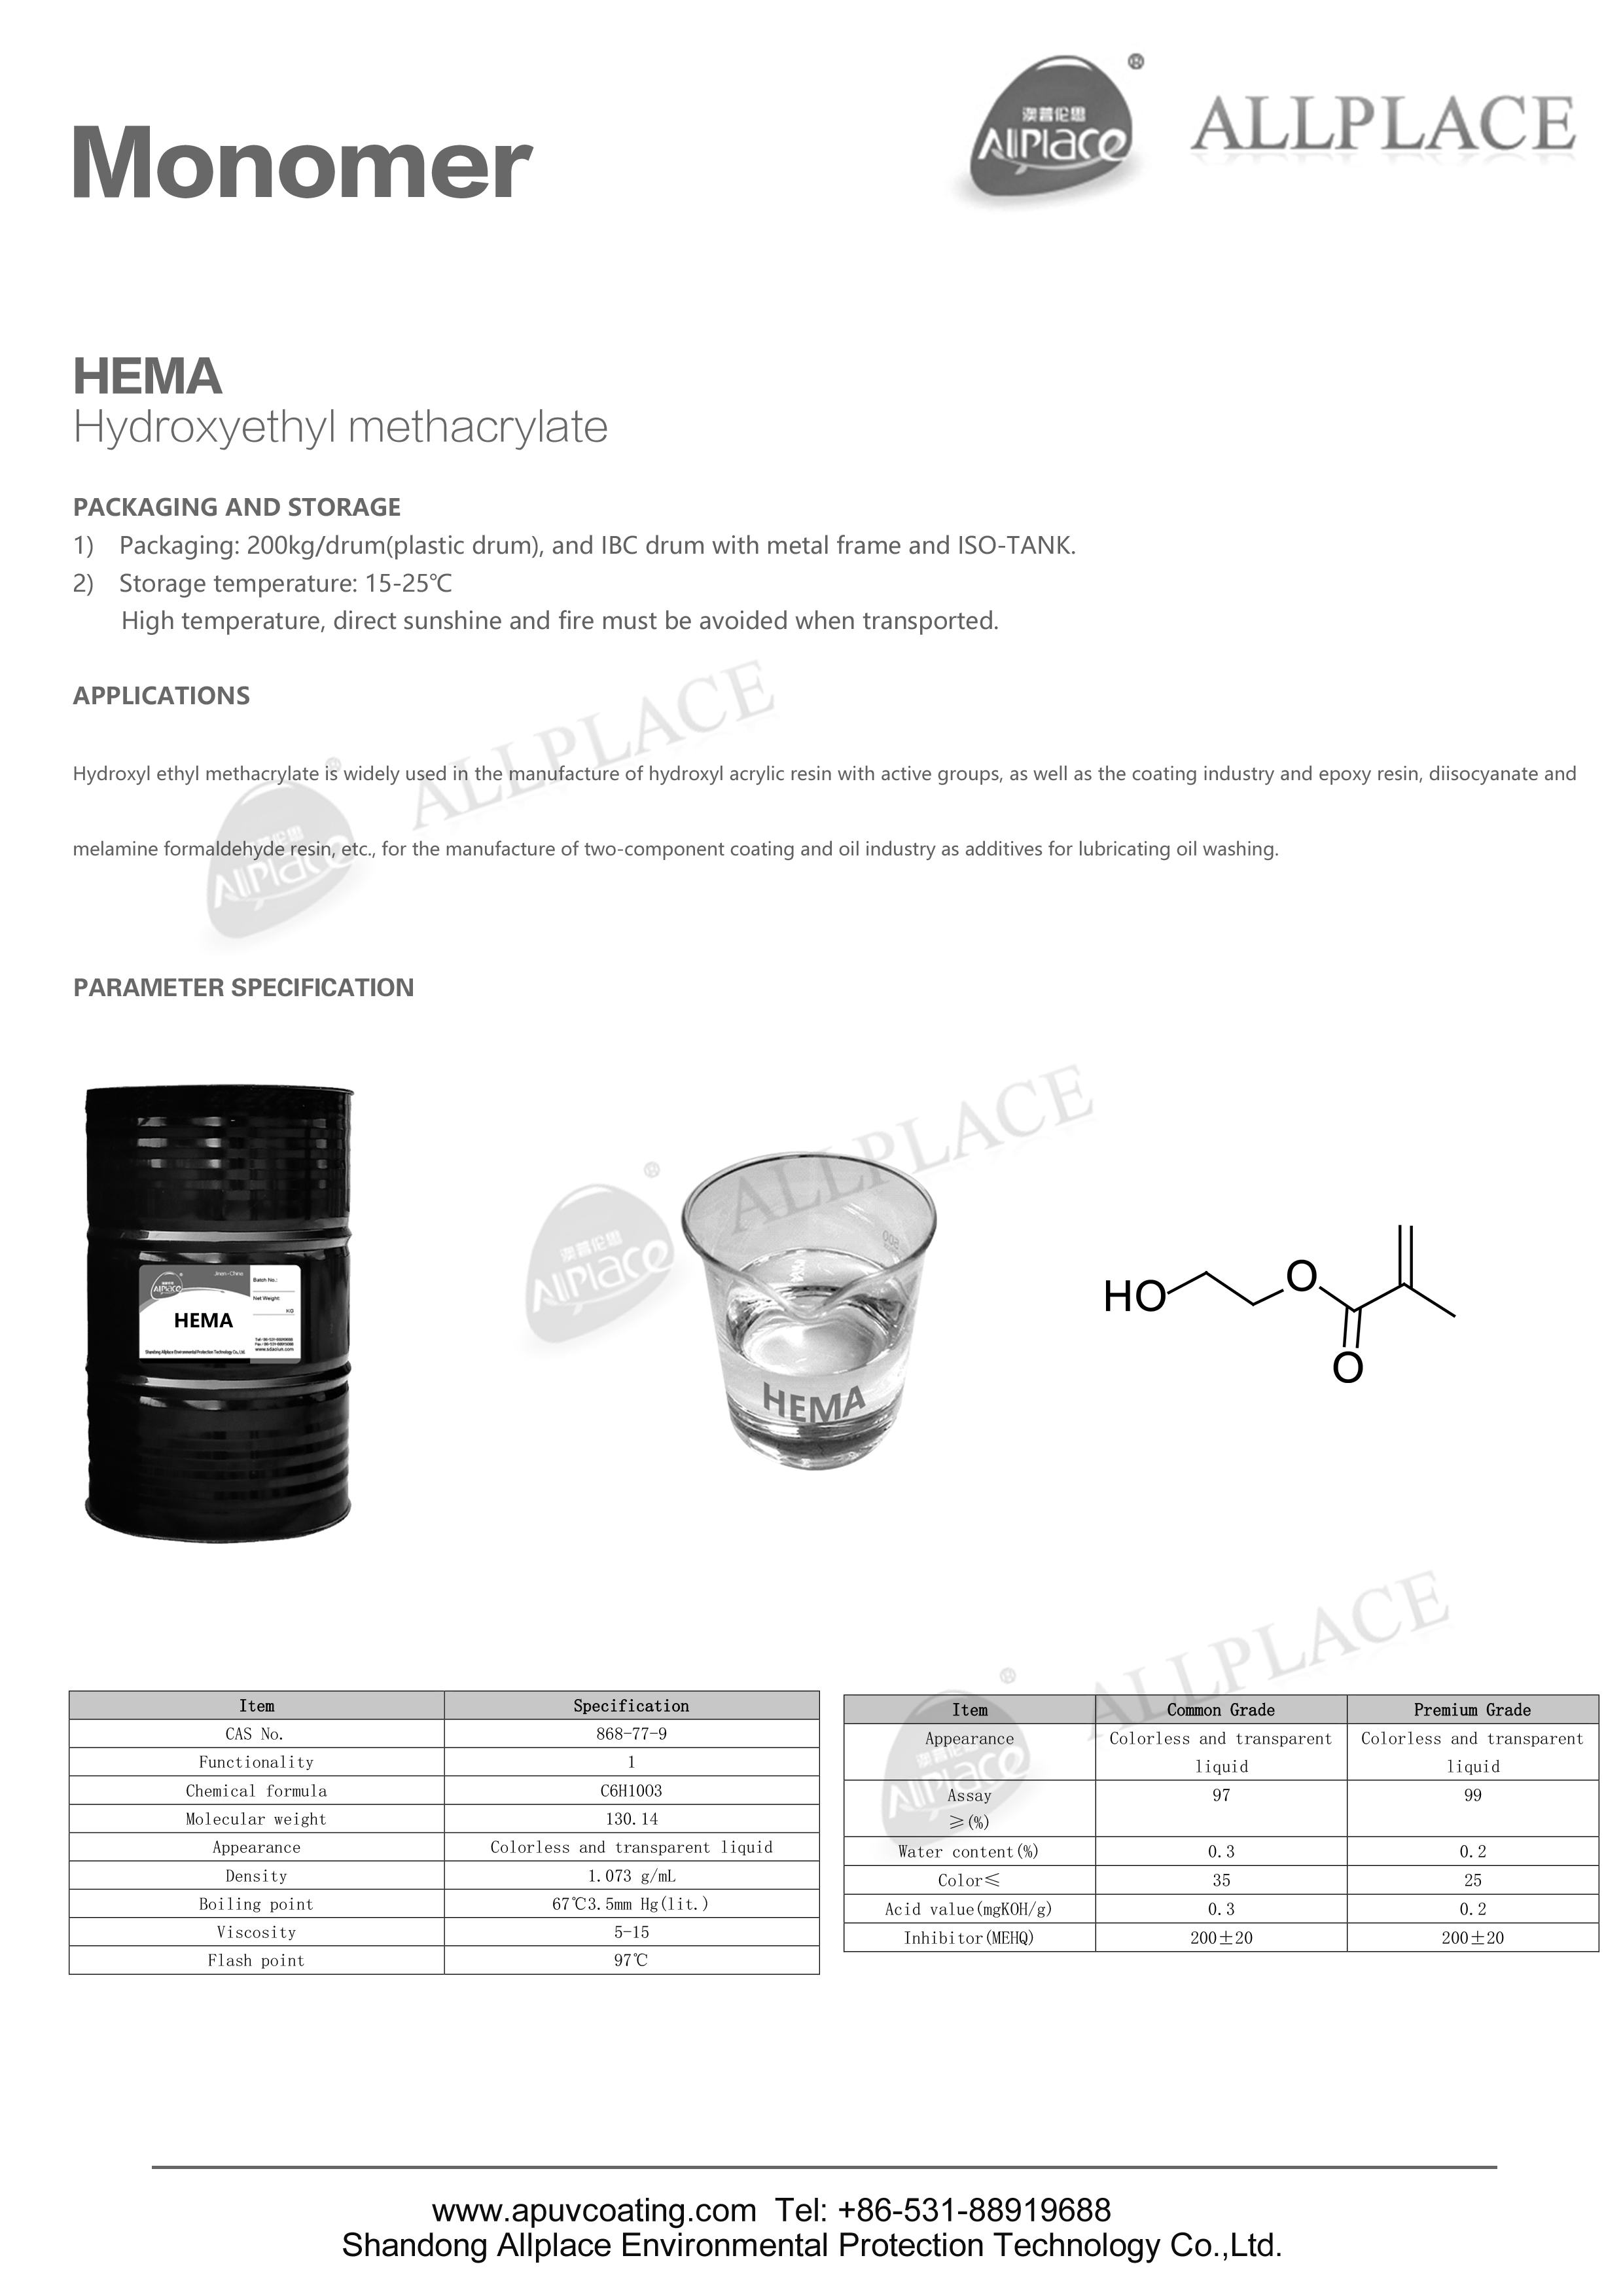 Printing Raw  Material  HEMA(2-Hydroxyethyl methacrylate) ALLPLACE